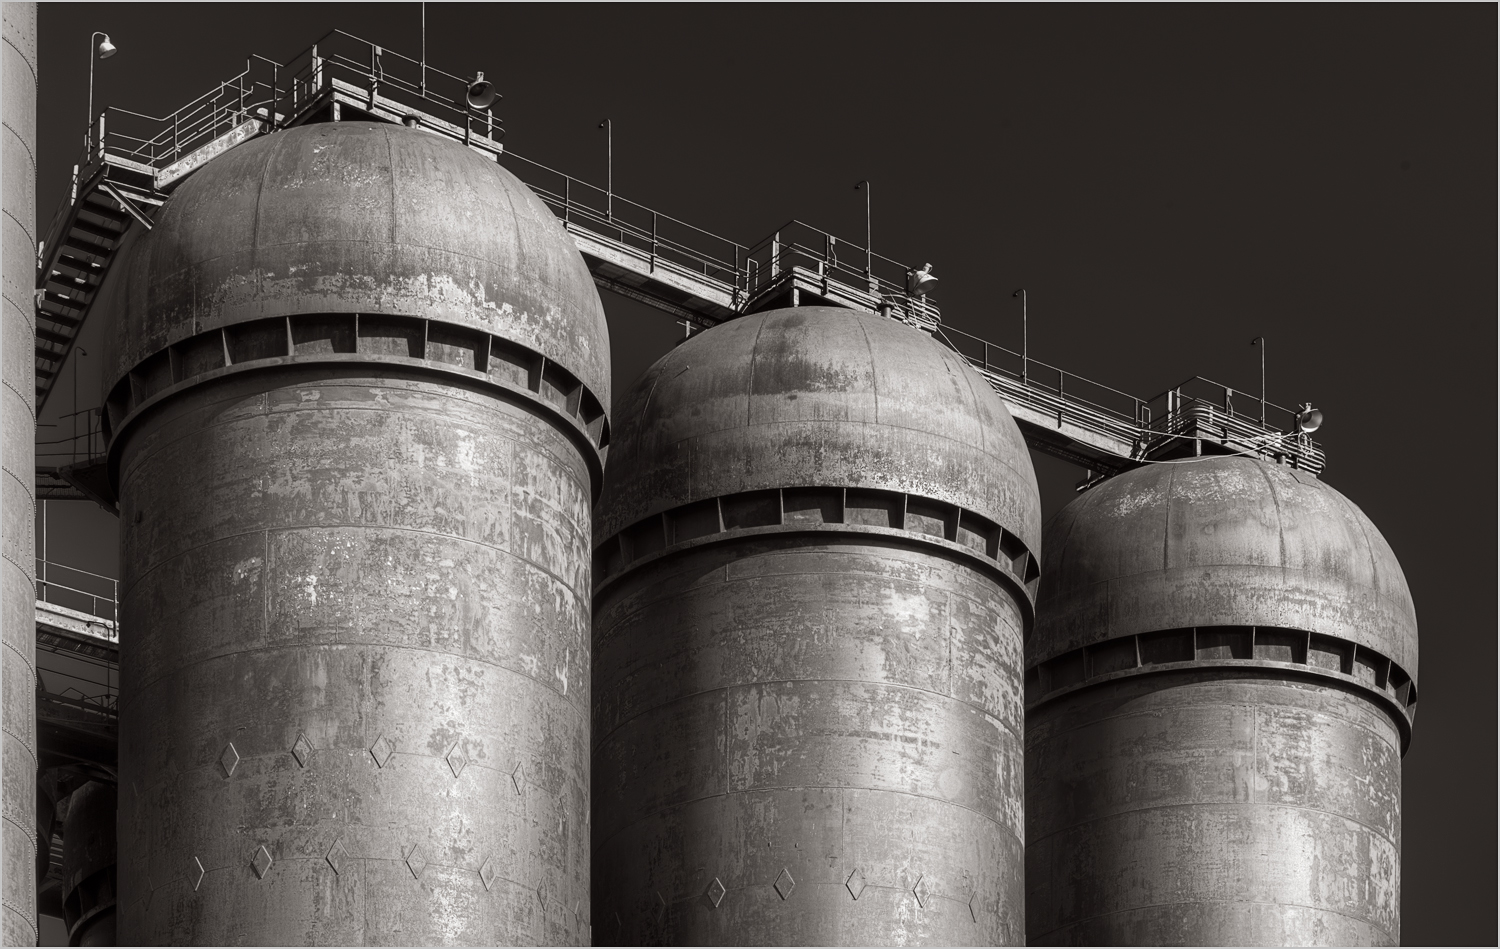 Stack towers at the Carrie Furnace in Rankin, Pennsylvania.